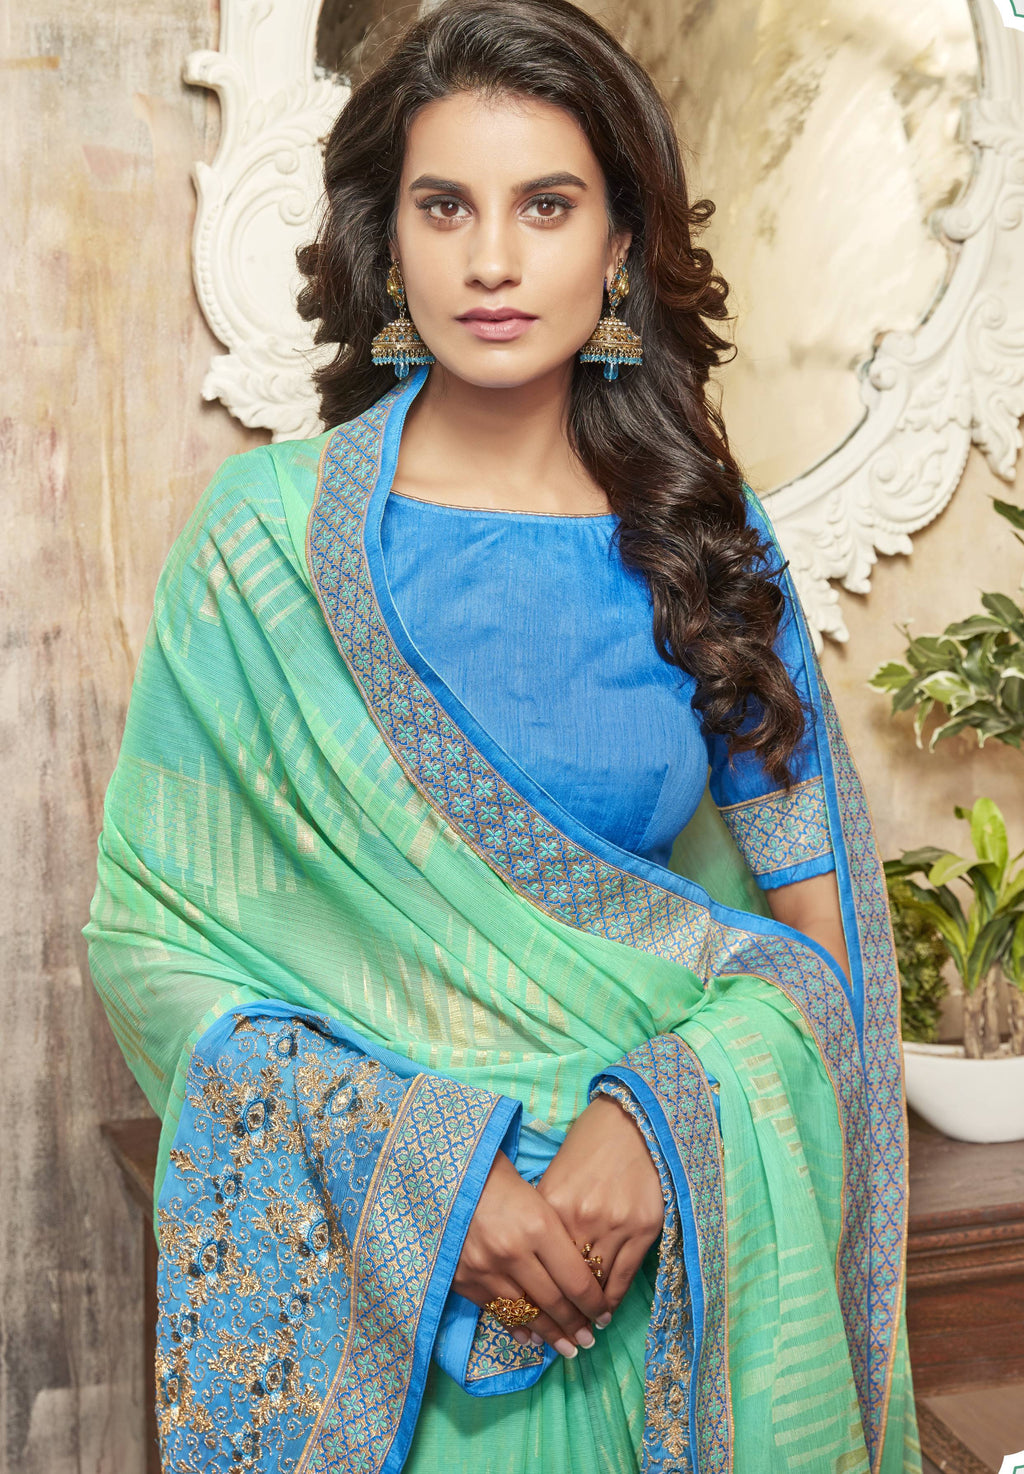 Green & Blue Color Wrinkle Chiffon Brasso Designer Function Wear Sarees : Gaurika Collection  NYF-1358 - YellowFashion.in